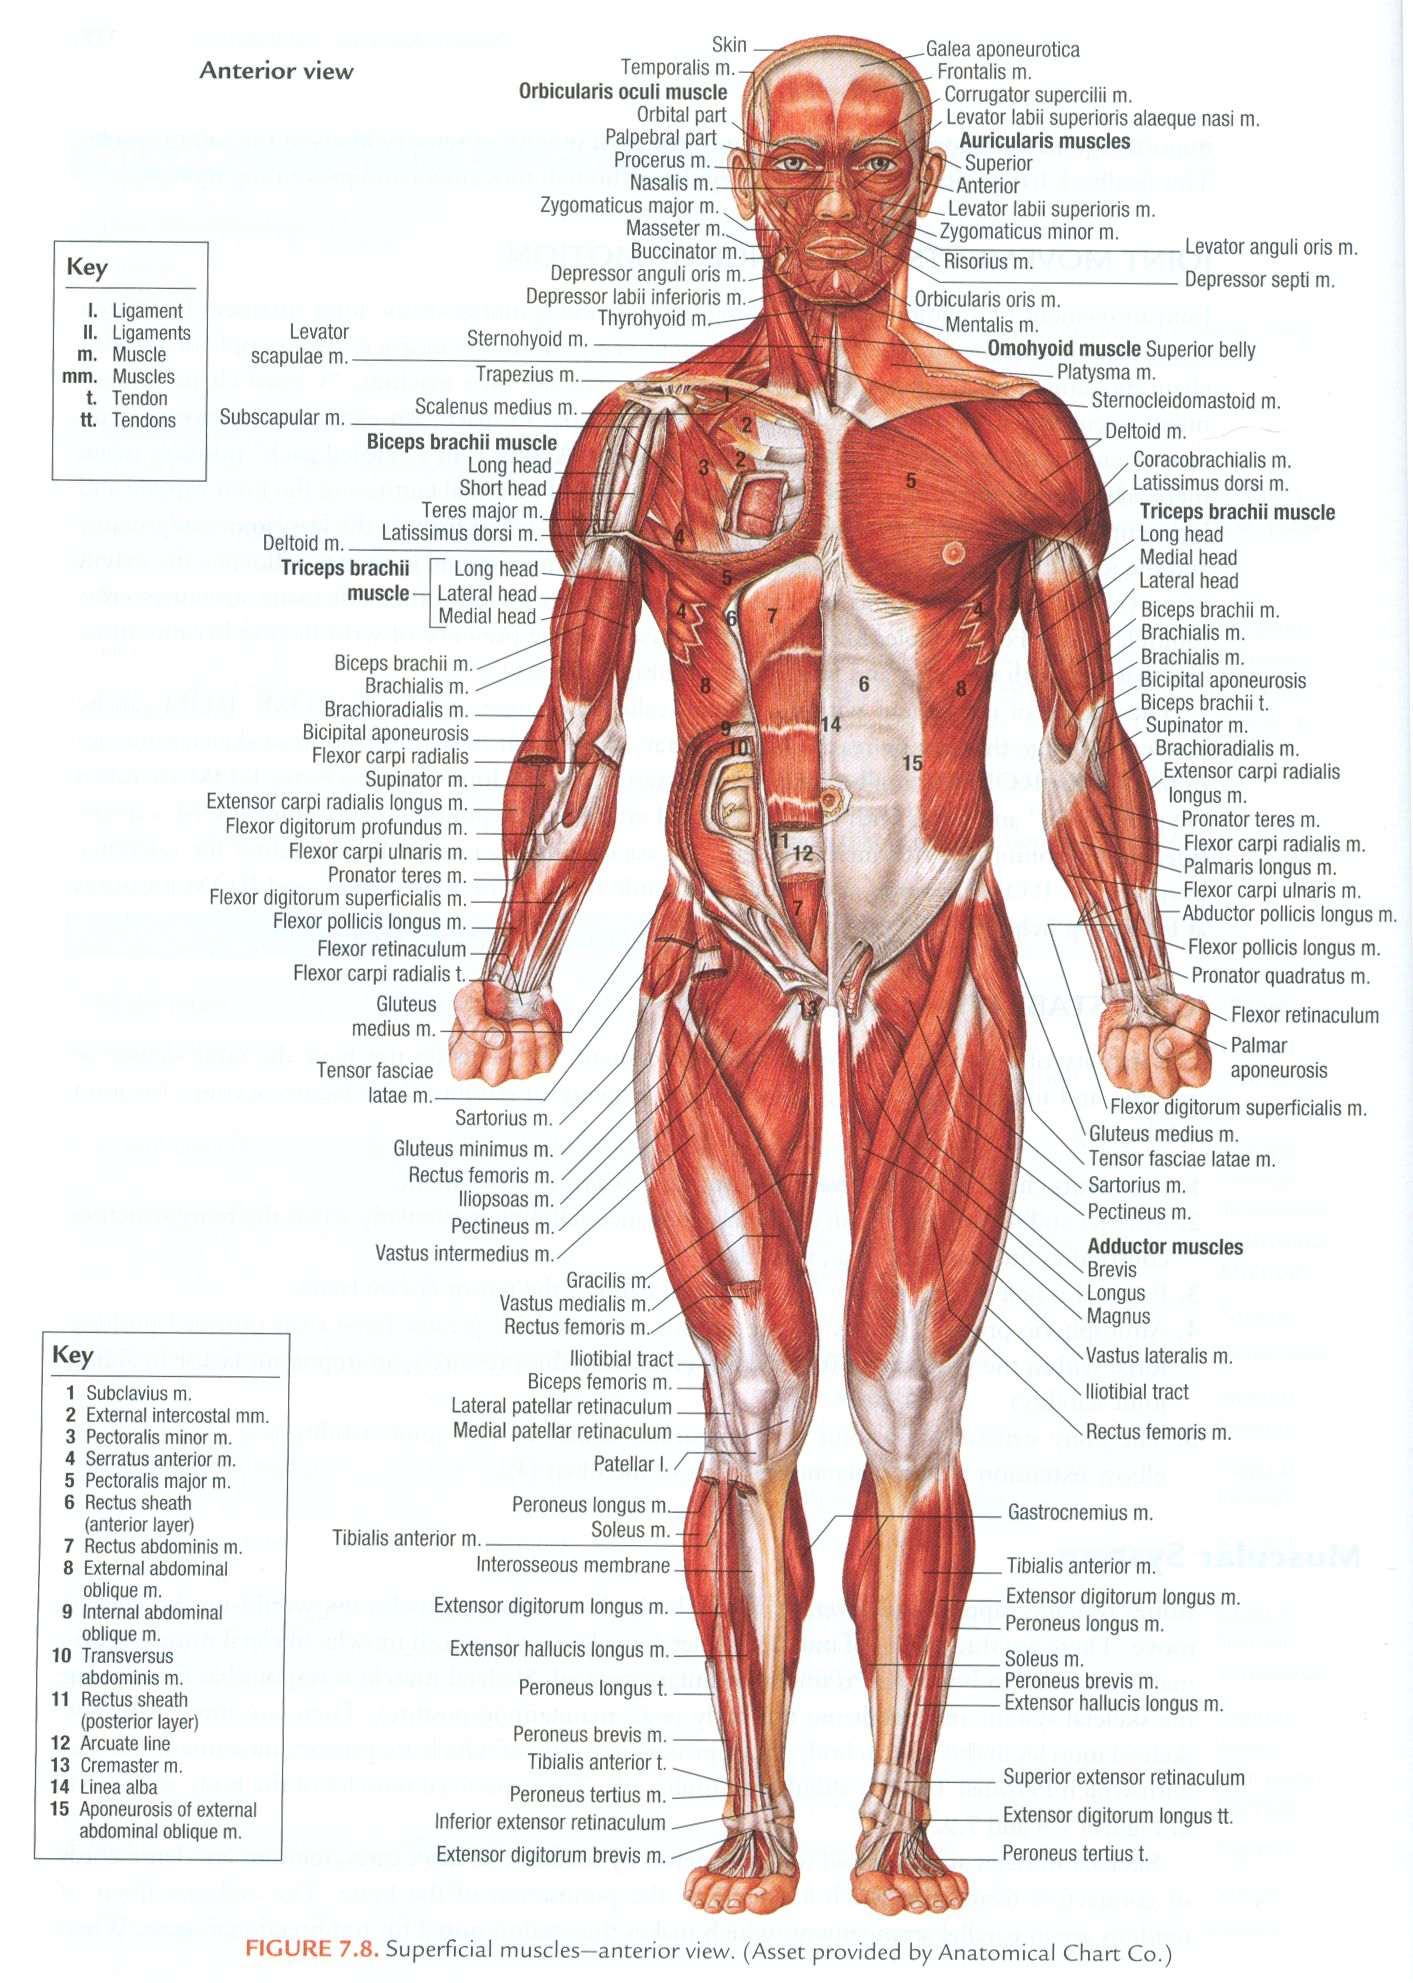 Muscles of the human body (superficial, anterior view) | Myology ...